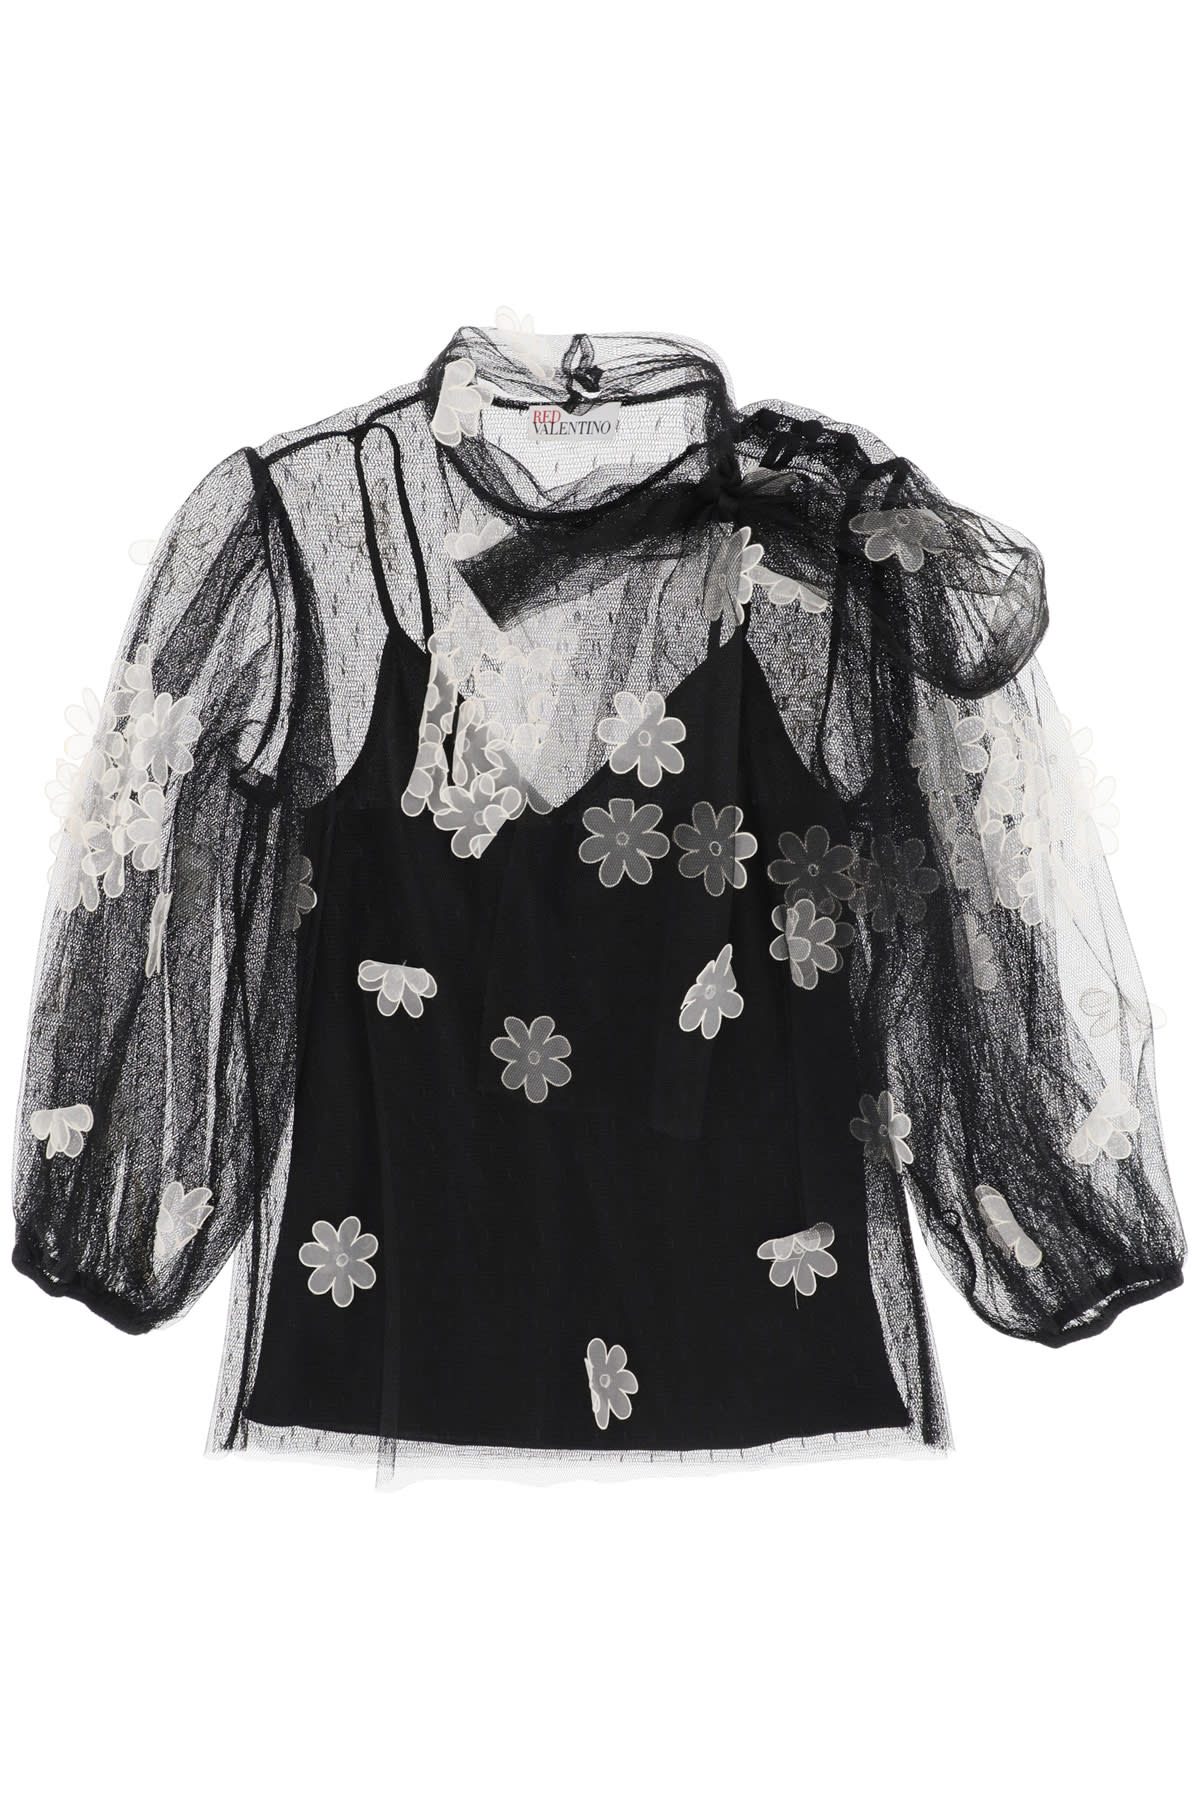 RED VALENTINO TULLE BLOUSE WITH ORGANZA FLOWERS